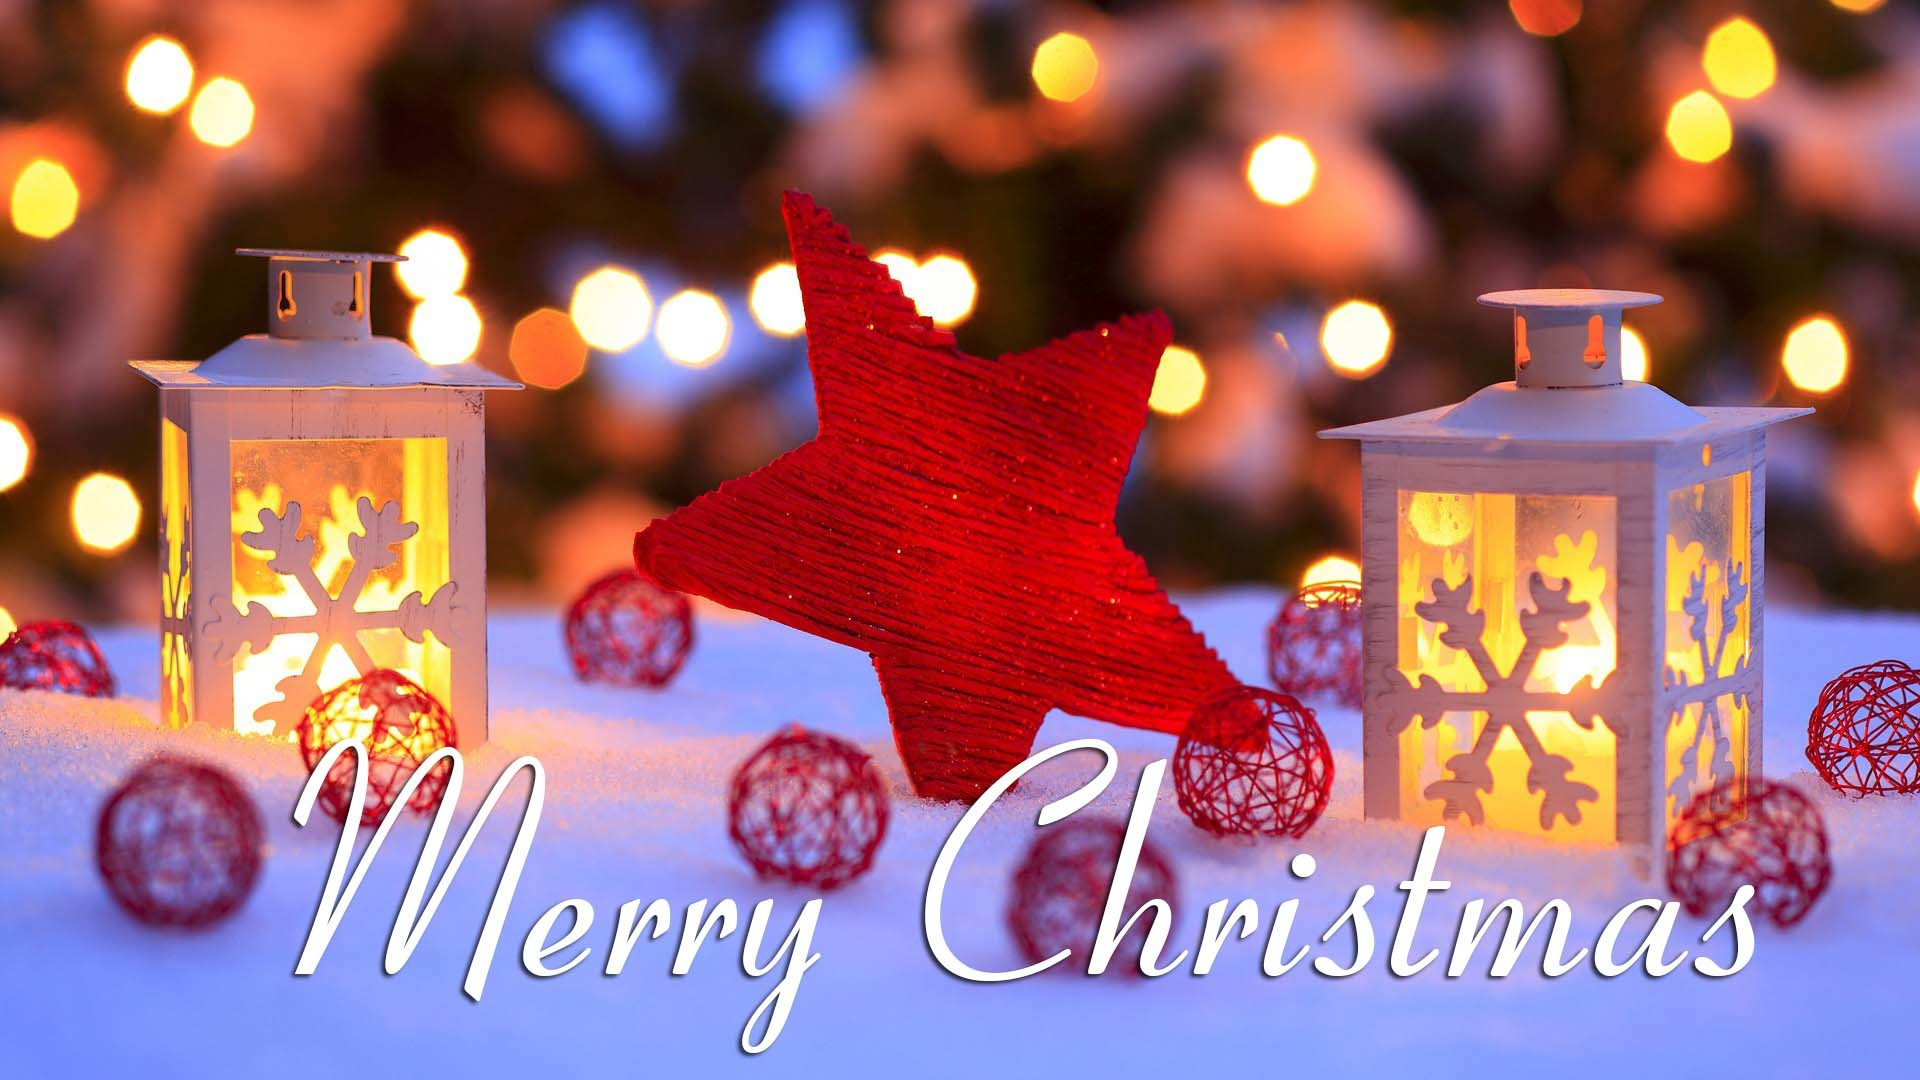 Res: 1920x1080, Merry-Christmas-and-Happy-New-year-hd-free-